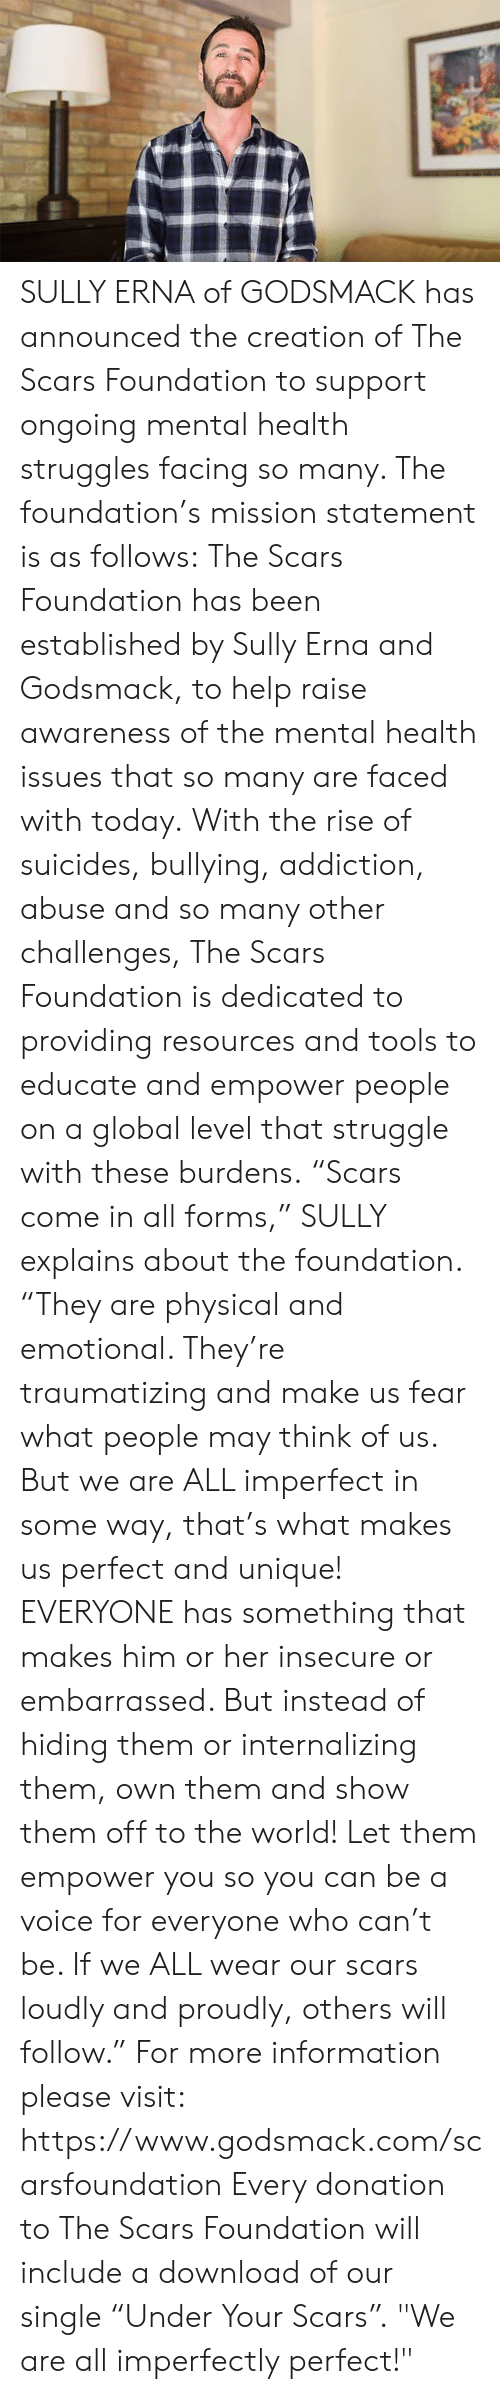 """Challenges: SULLY ERNA of GODSMACK has announced the creation of The Scars Foundation to support ongoing mental health struggles facing so many.  The foundation's mission statement is as follows:  The Scars Foundation has been established by Sully Erna and Godsmack, to help raise awareness of the mental health issues that so many are faced with today.  With the rise of suicides, bullying, addiction, abuse and so many other challenges, The Scars Foundation is dedicated to providing resources and tools to educate and empower people on a global level that struggle with these burdens.  """"Scars come in all forms,"""" SULLY explains about the foundation.  """"They are physical and emotional. They're traumatizing and make us fear what people may think of us. But we are ALL imperfect in some way, that's what makes us perfect and unique!  EVERYONE has something that makes him or her insecure or embarrassed. But instead of hiding them or internalizing them, own them and show them off to the world!  Let them empower you so you can be a voice for everyone who can't be. If we ALL wear our scars loudly and proudly, others will follow.""""  For more information please visit: https://www.godsmack.com/scarsfoundation  Every donation to The Scars Foundation will include a download of our single """"Under Your Scars"""".  """"We are all imperfectly perfect!"""""""